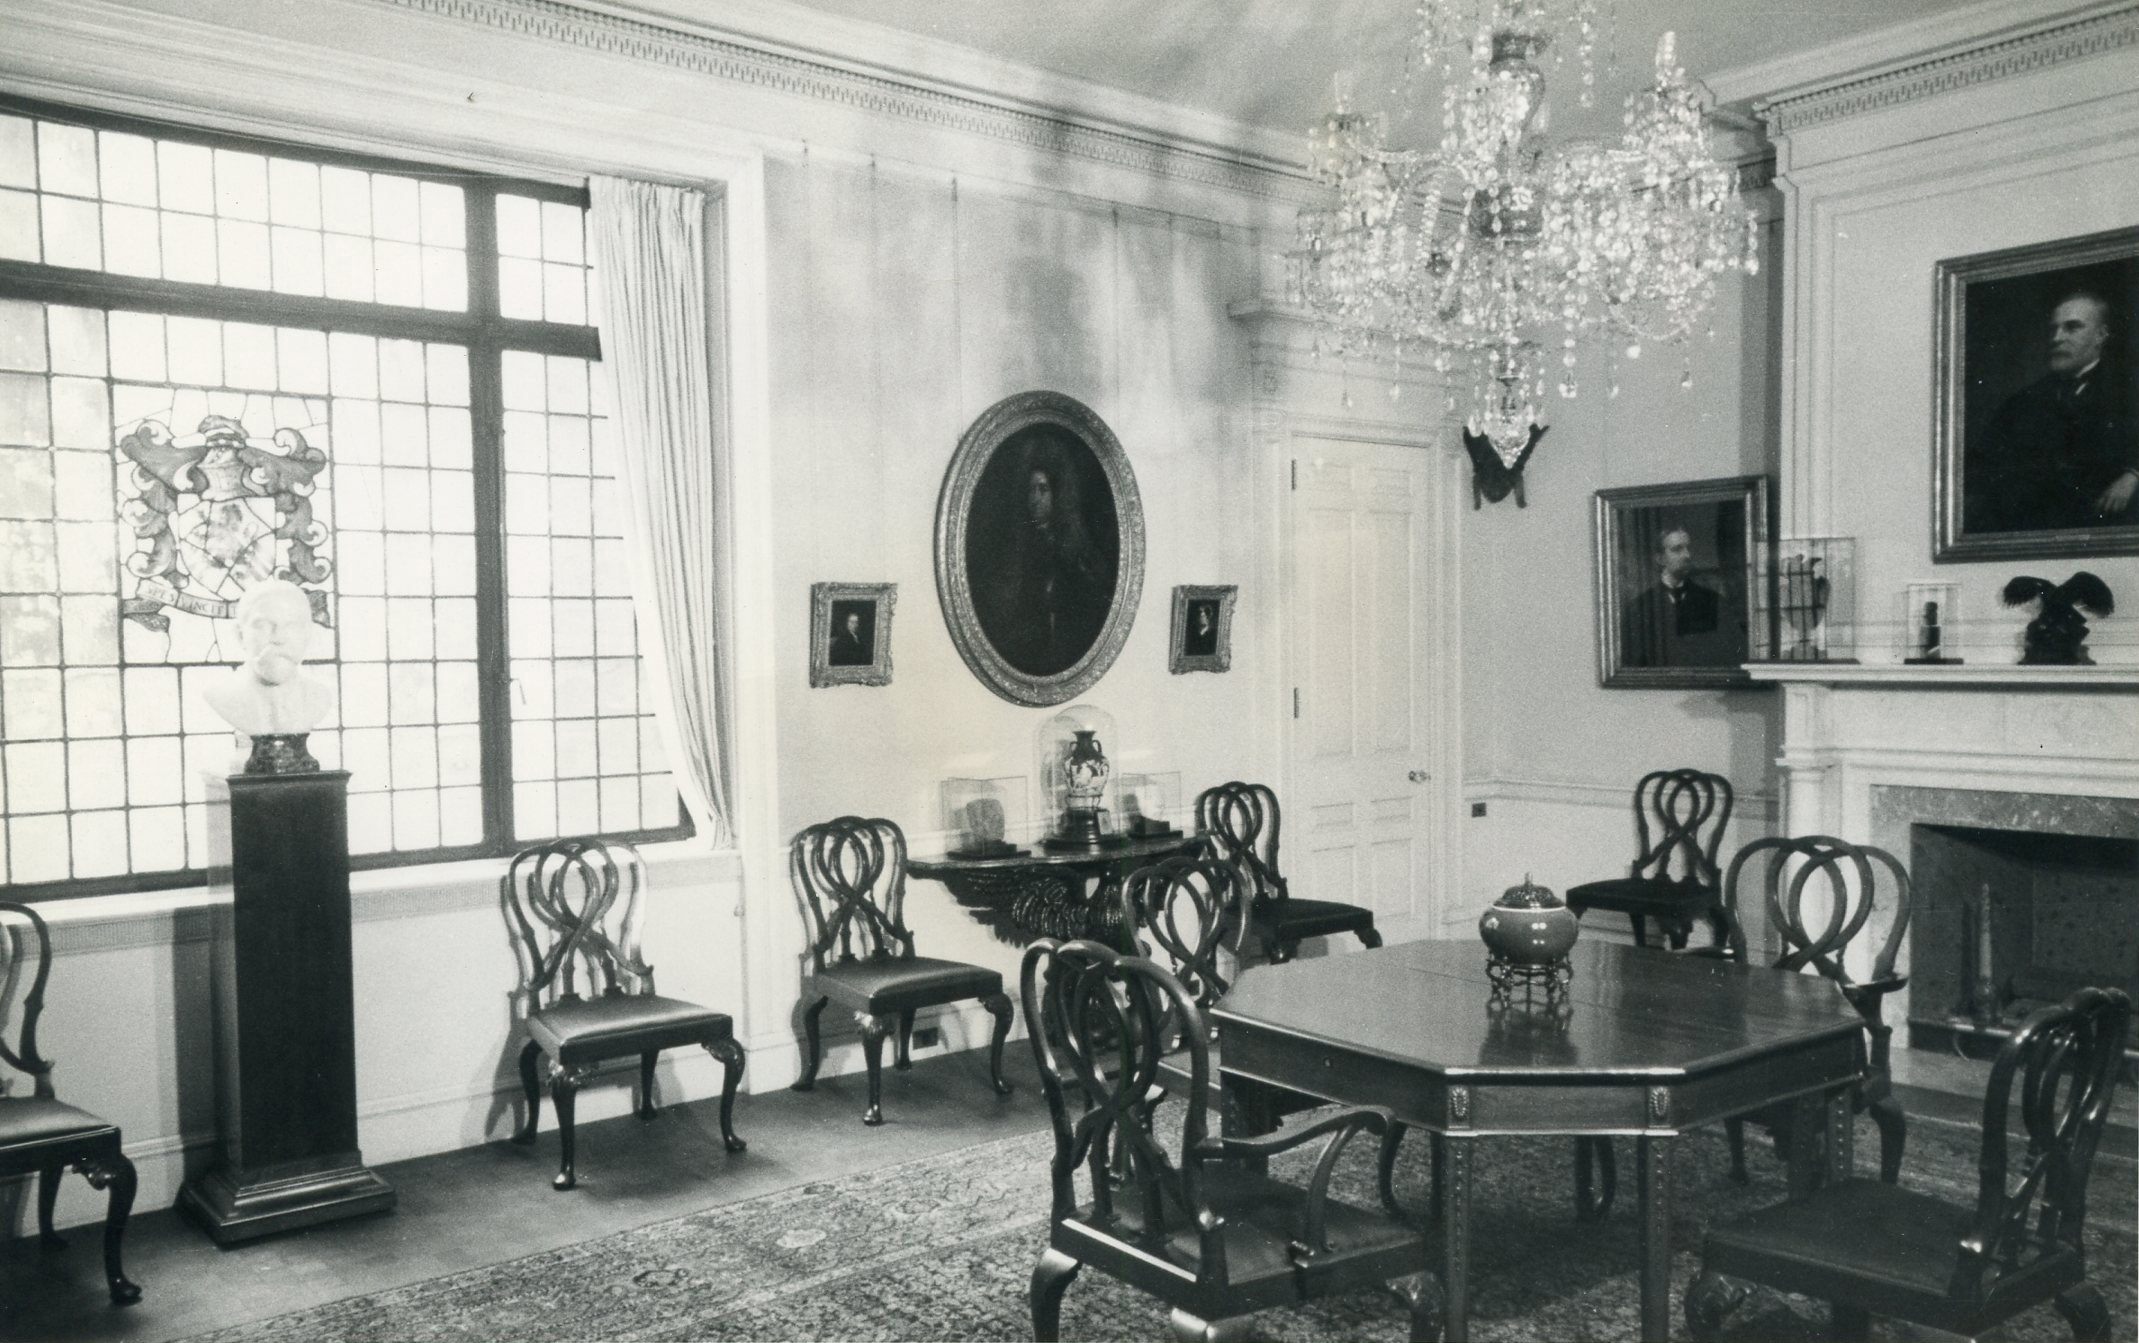 A black and white photograph shows the interior of a dining room. A small table and four chairs are to the right. A window is on the left; at its center is a square of stained glass. Chairs are positioned along the wall; there are several portrait paintings and other decorative objects in the room.